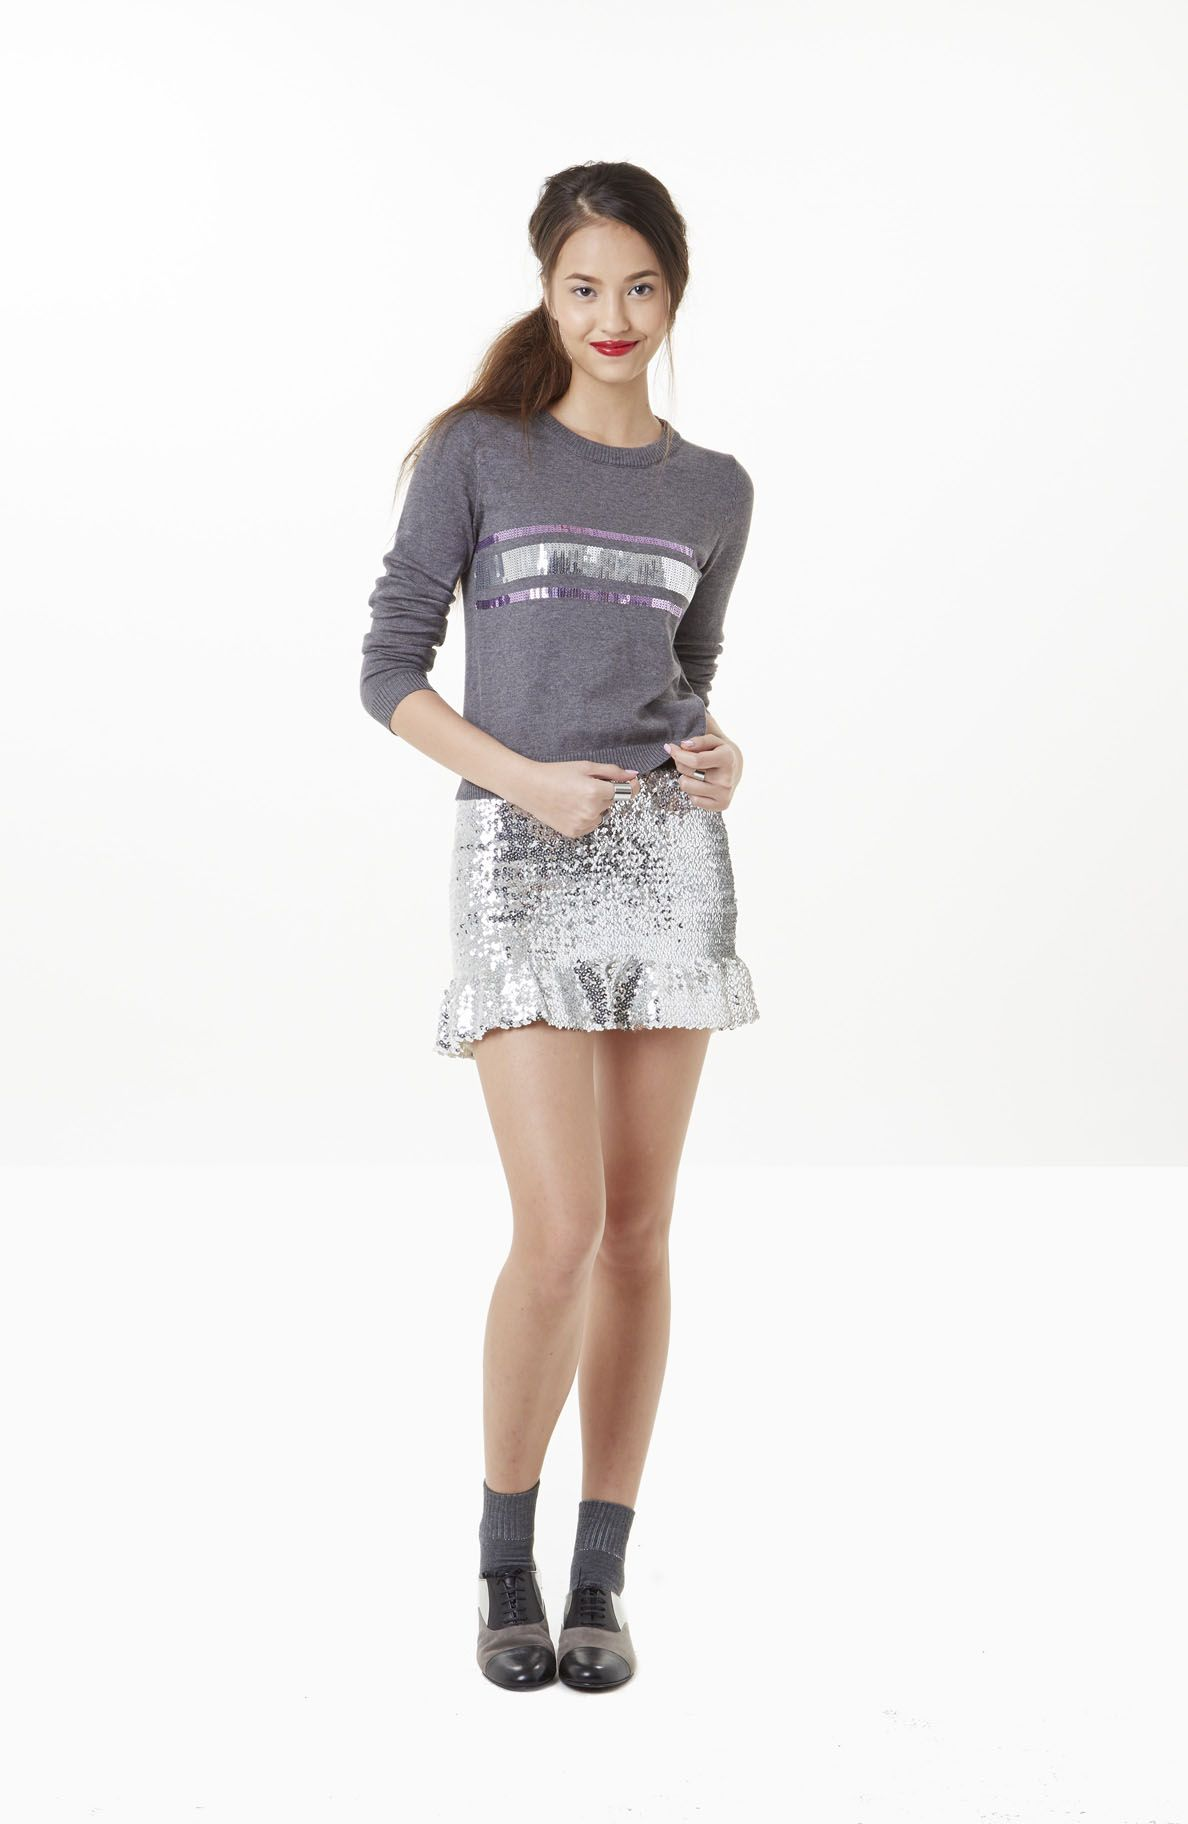 Sequin ribbon sweater [5PPPS14002]  Super soft cotton sweater knit to take you from day to night in glamorous comfort.